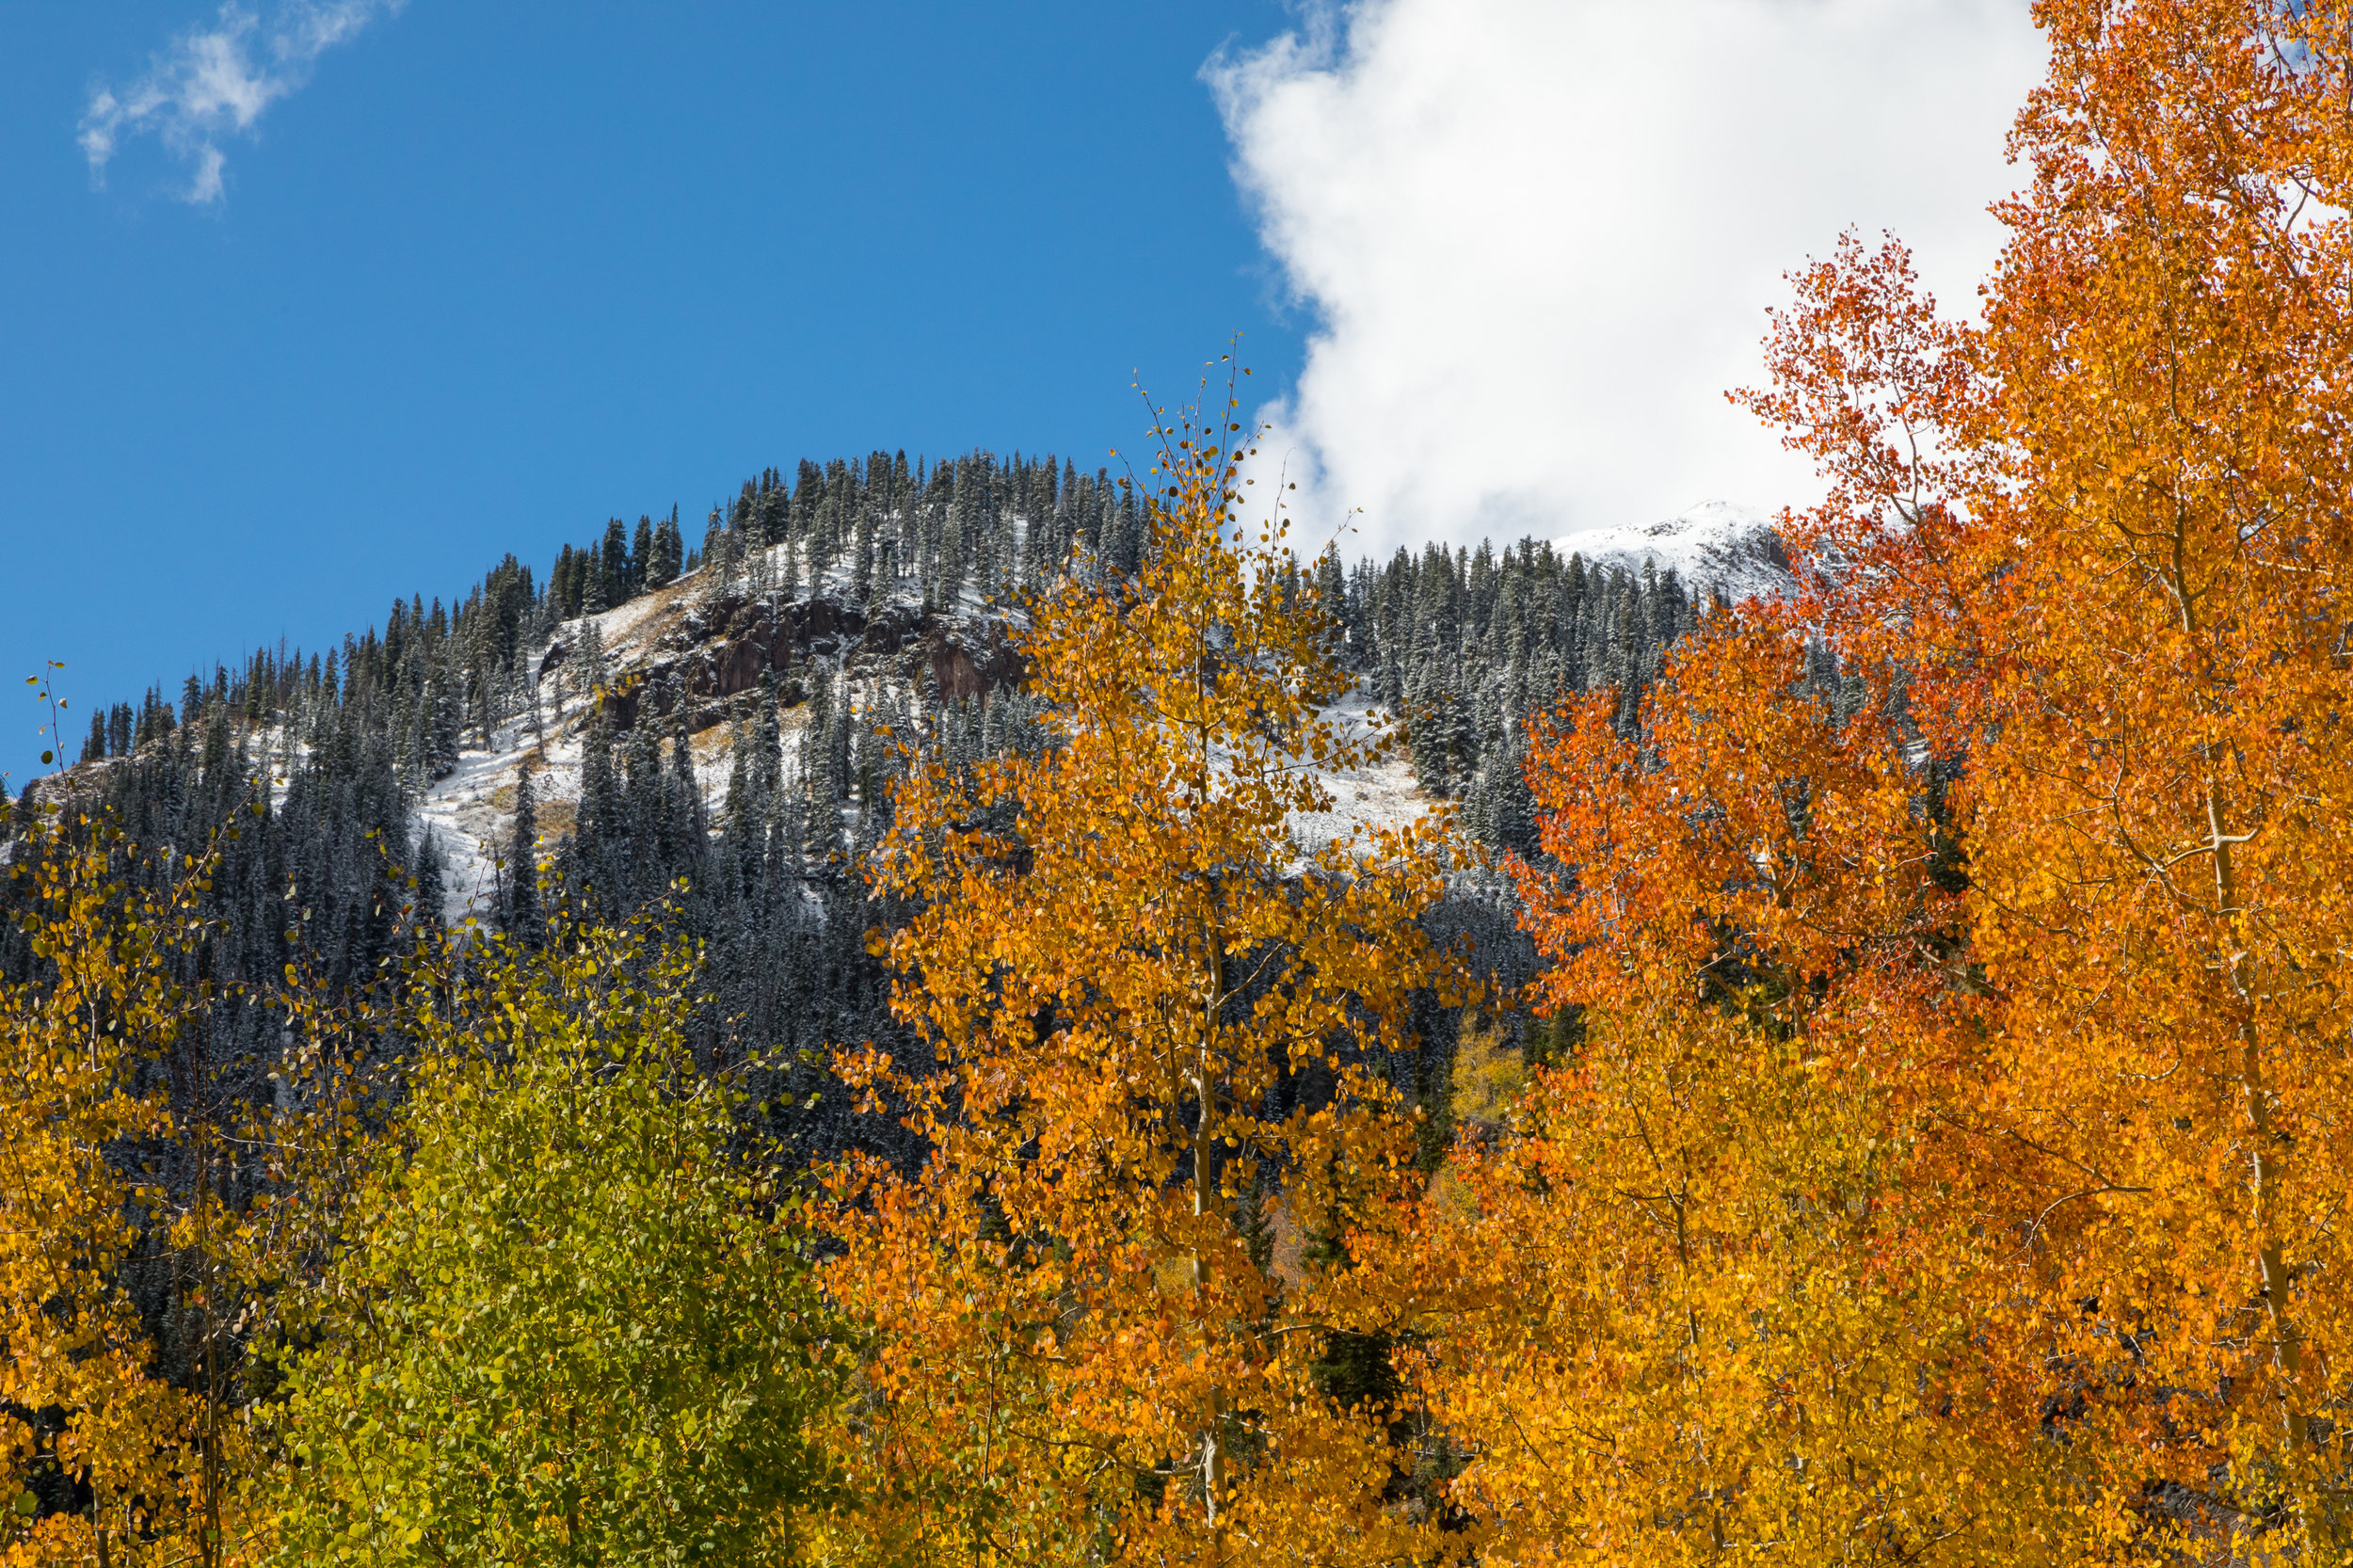 Red Mountain, Image # 4547